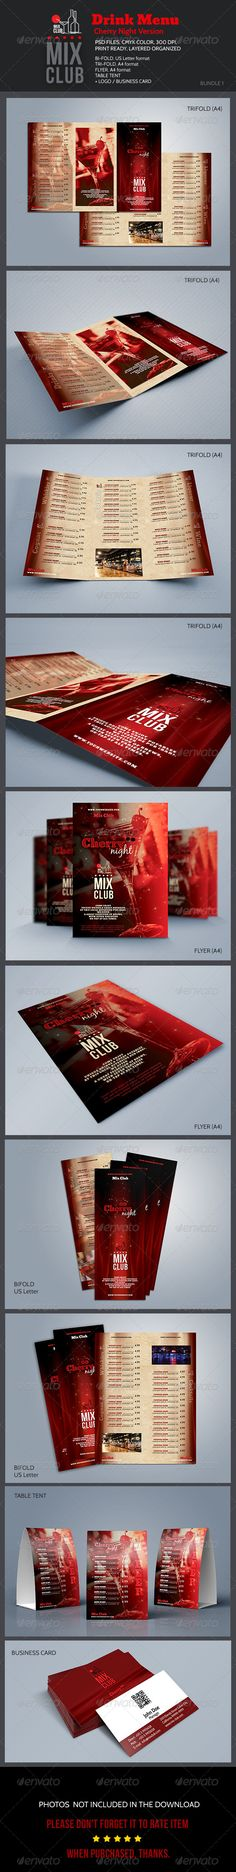 Mix Club / Cherry Night - Food Menus Print Templates